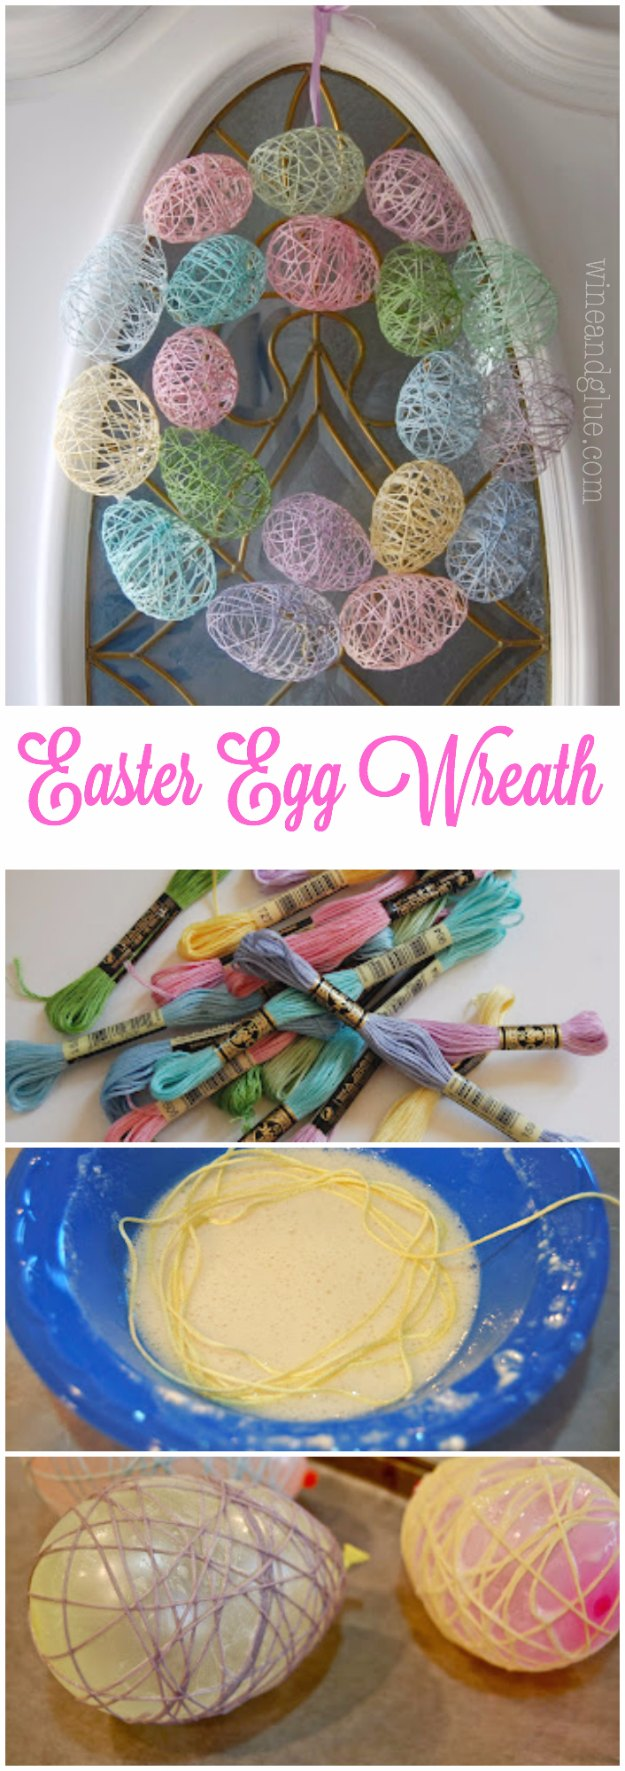 DIY Easter Decorations - Decor Ideas for the Home and Table - Easter Egg Wreath - Cute Easter Wreaths, Cheap and Easy Dollar Store Crafts for Kids. Vintage and Rustic Centerpieces and Mantel Decorations.